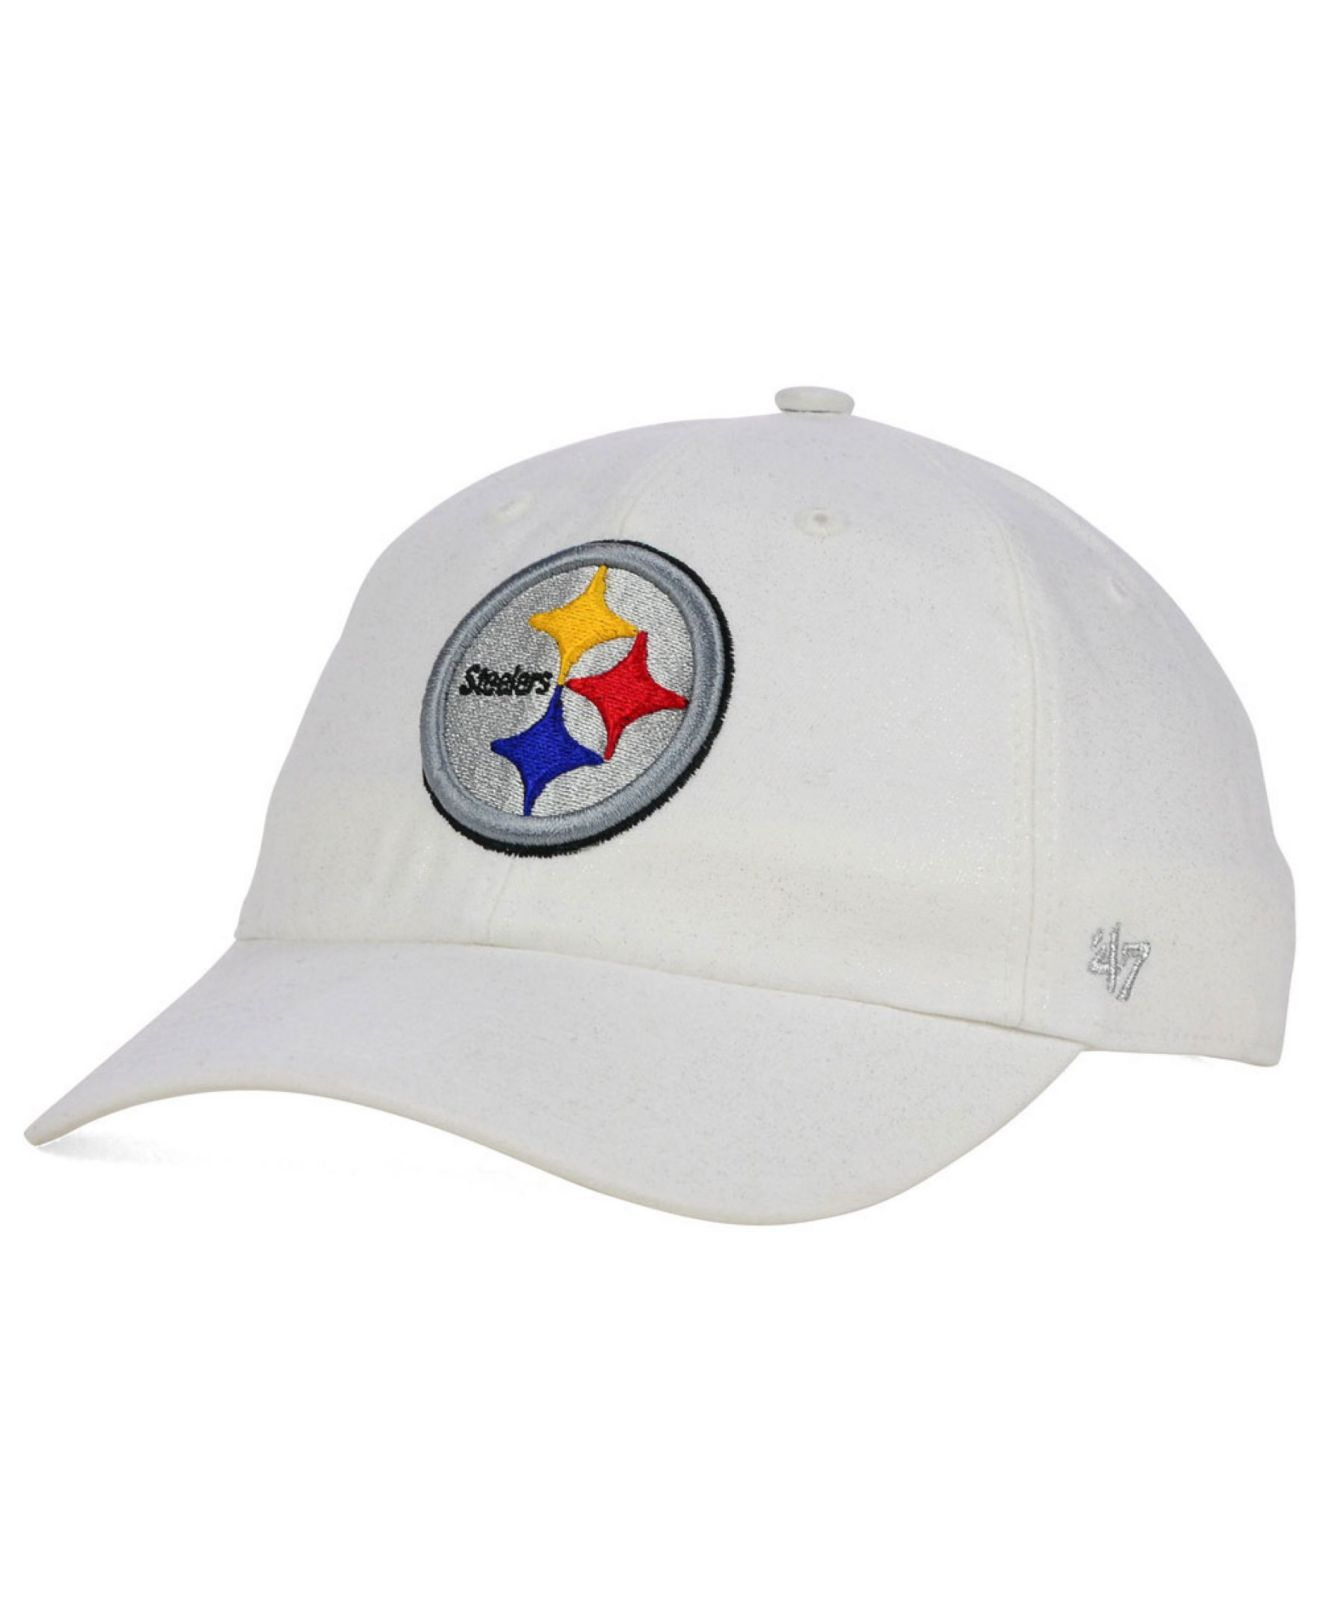 promo code 11243 3e7c1 ... ireland lyst 47 brand womens pittsburgh steelers luster clean up cap in  white c69c4 62593